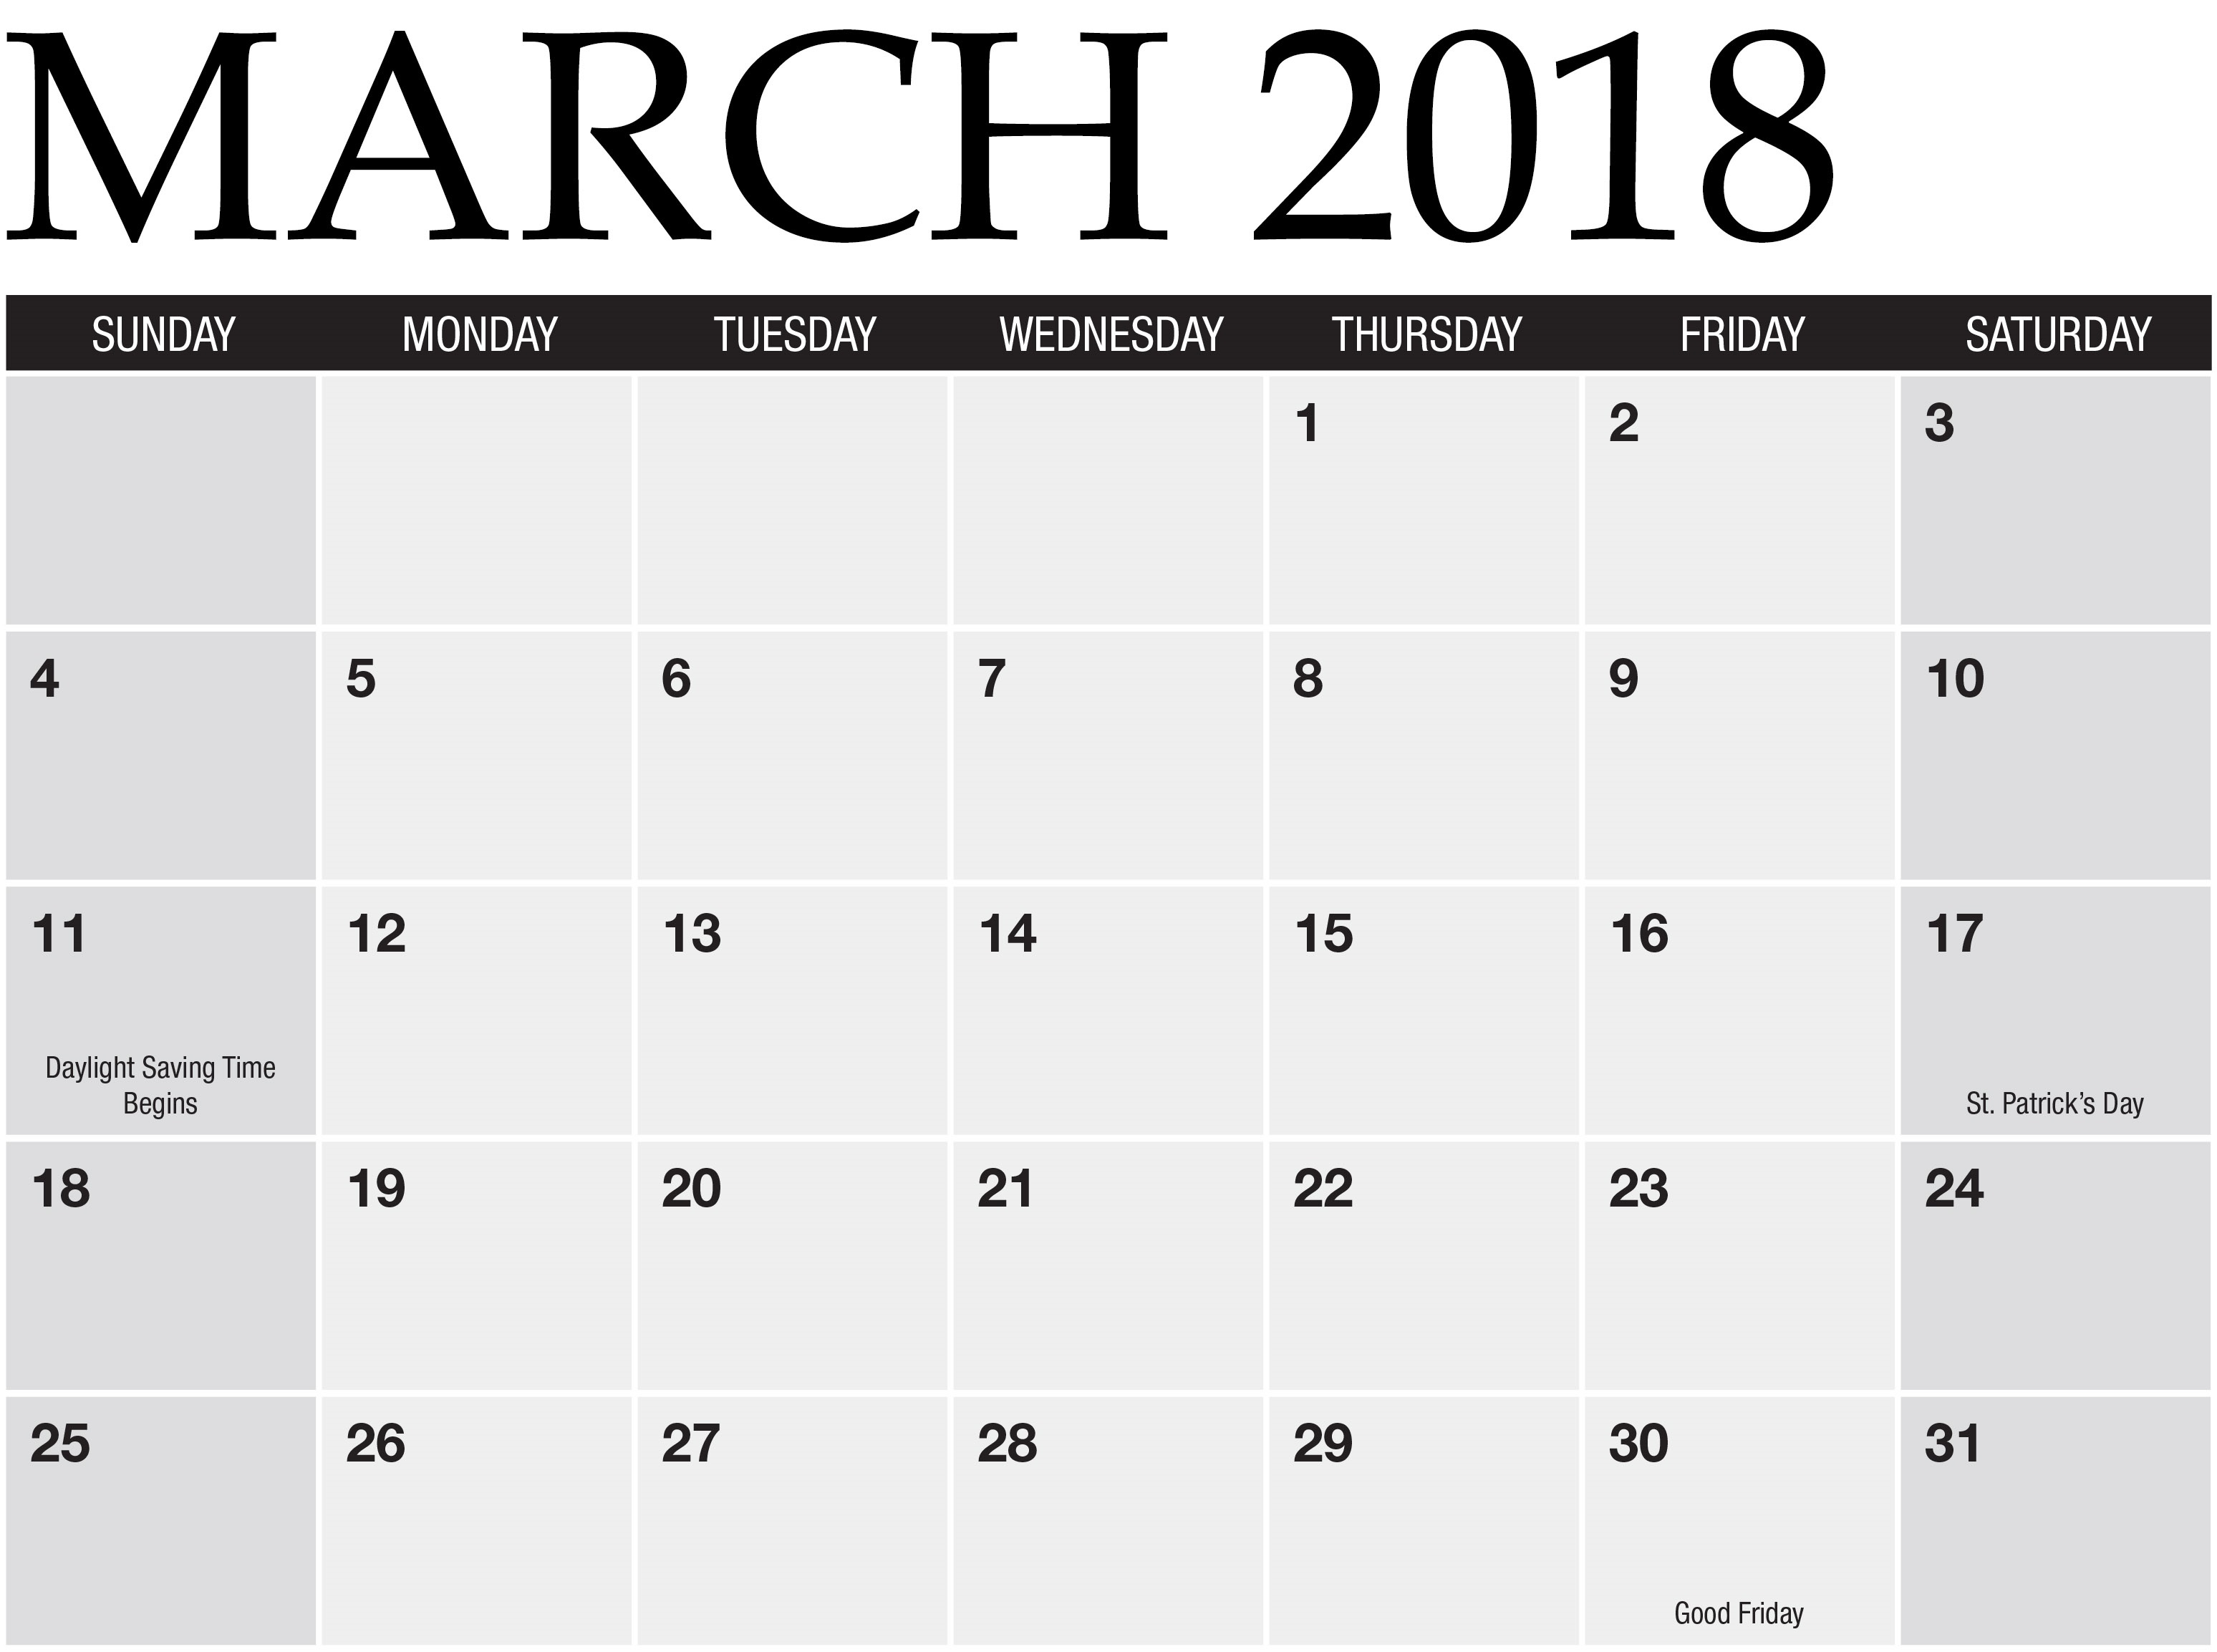 March 2018 Calendar Template Free Download